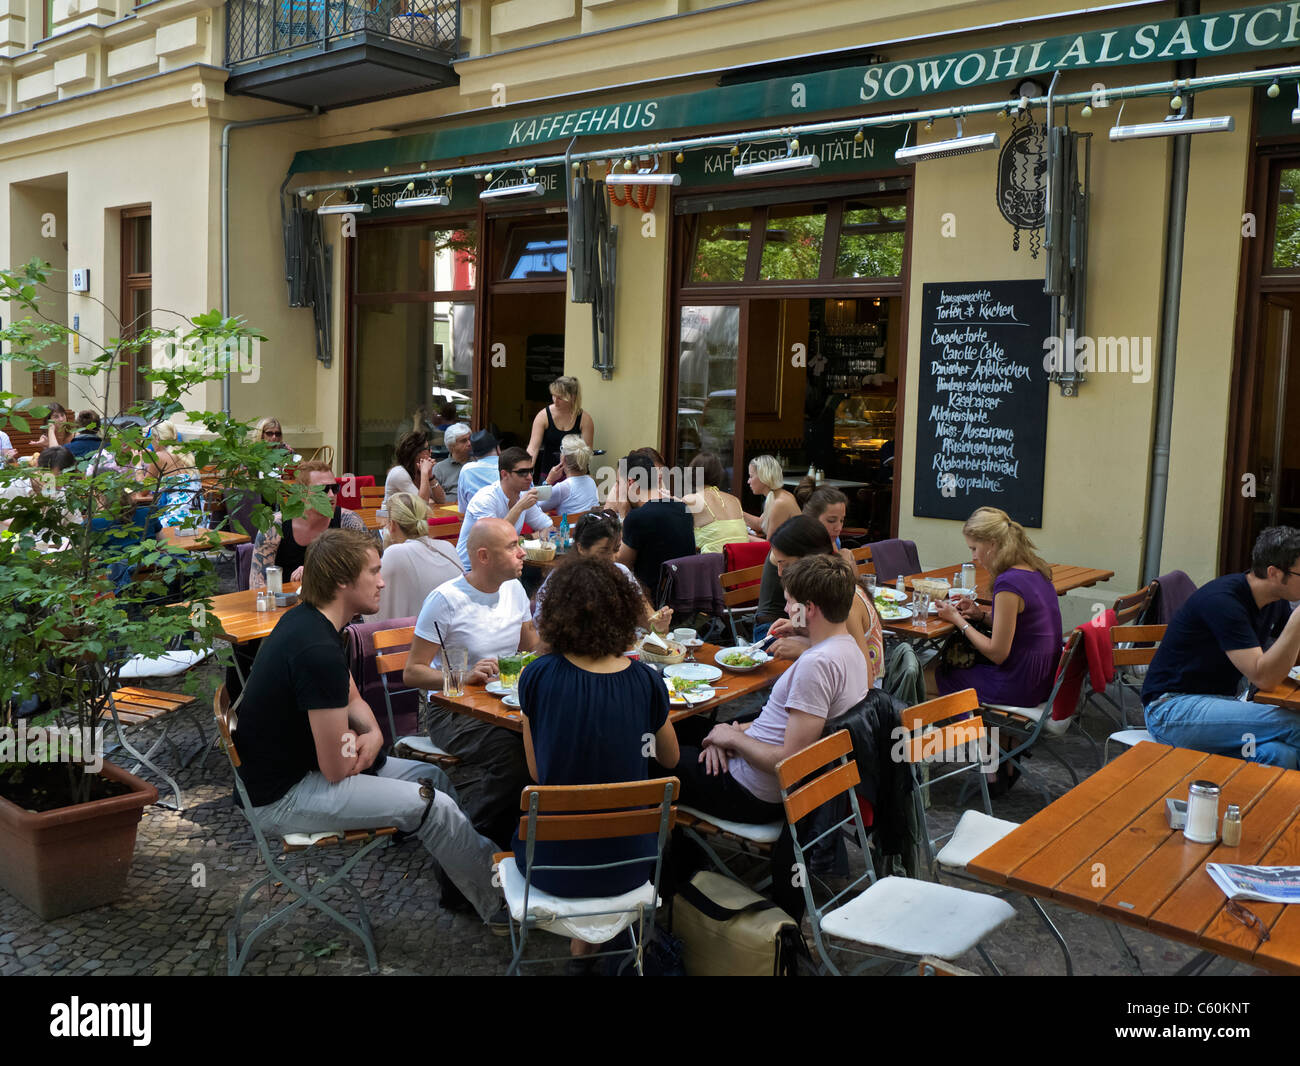 Busy pavement cafe serving brunch on a weekend morning in Prenzlauer Berg in Berlin Germany - Stock Image